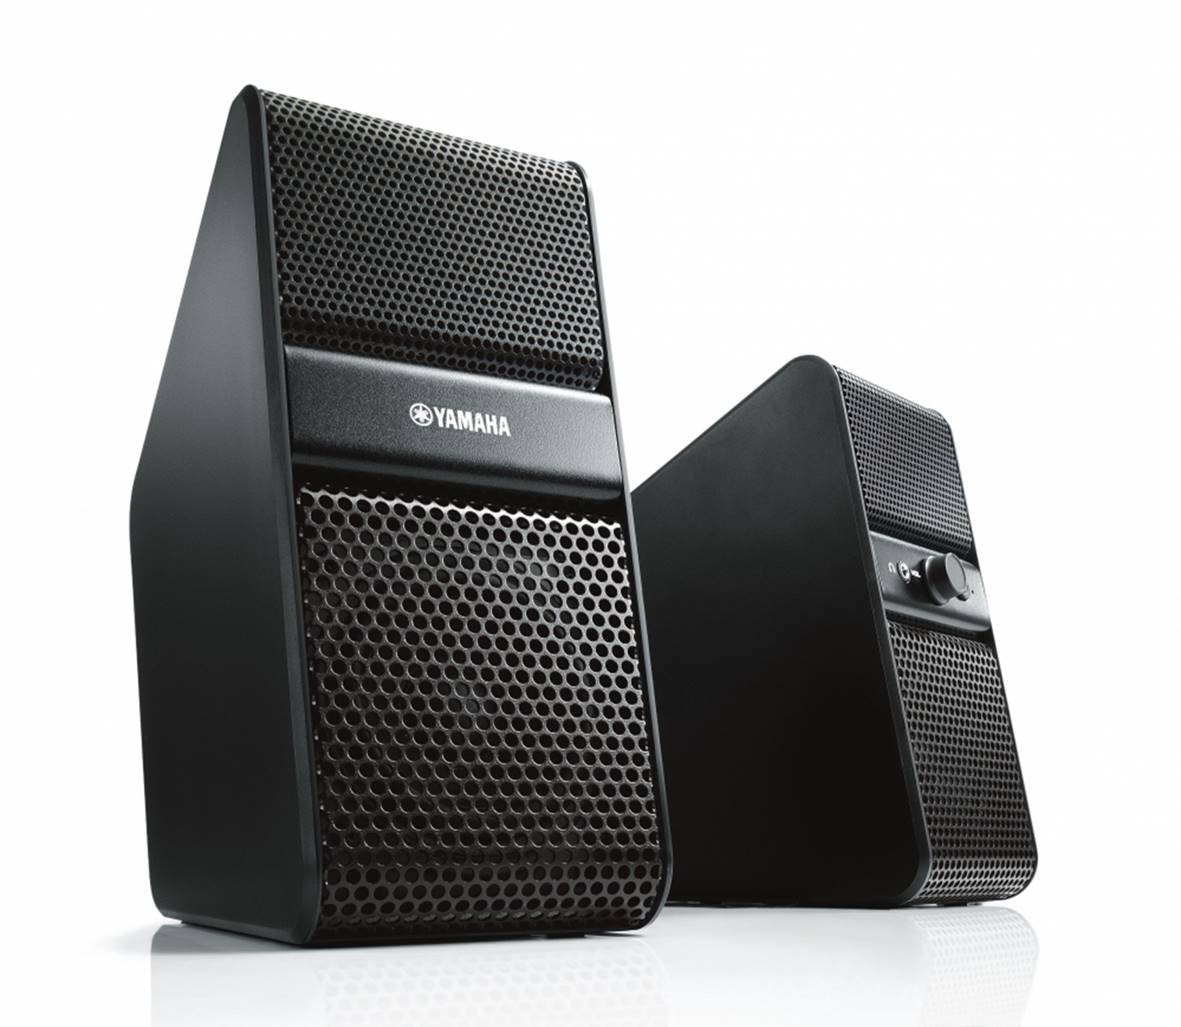 Yamaha NX-50 Speakers Gaming Speakers